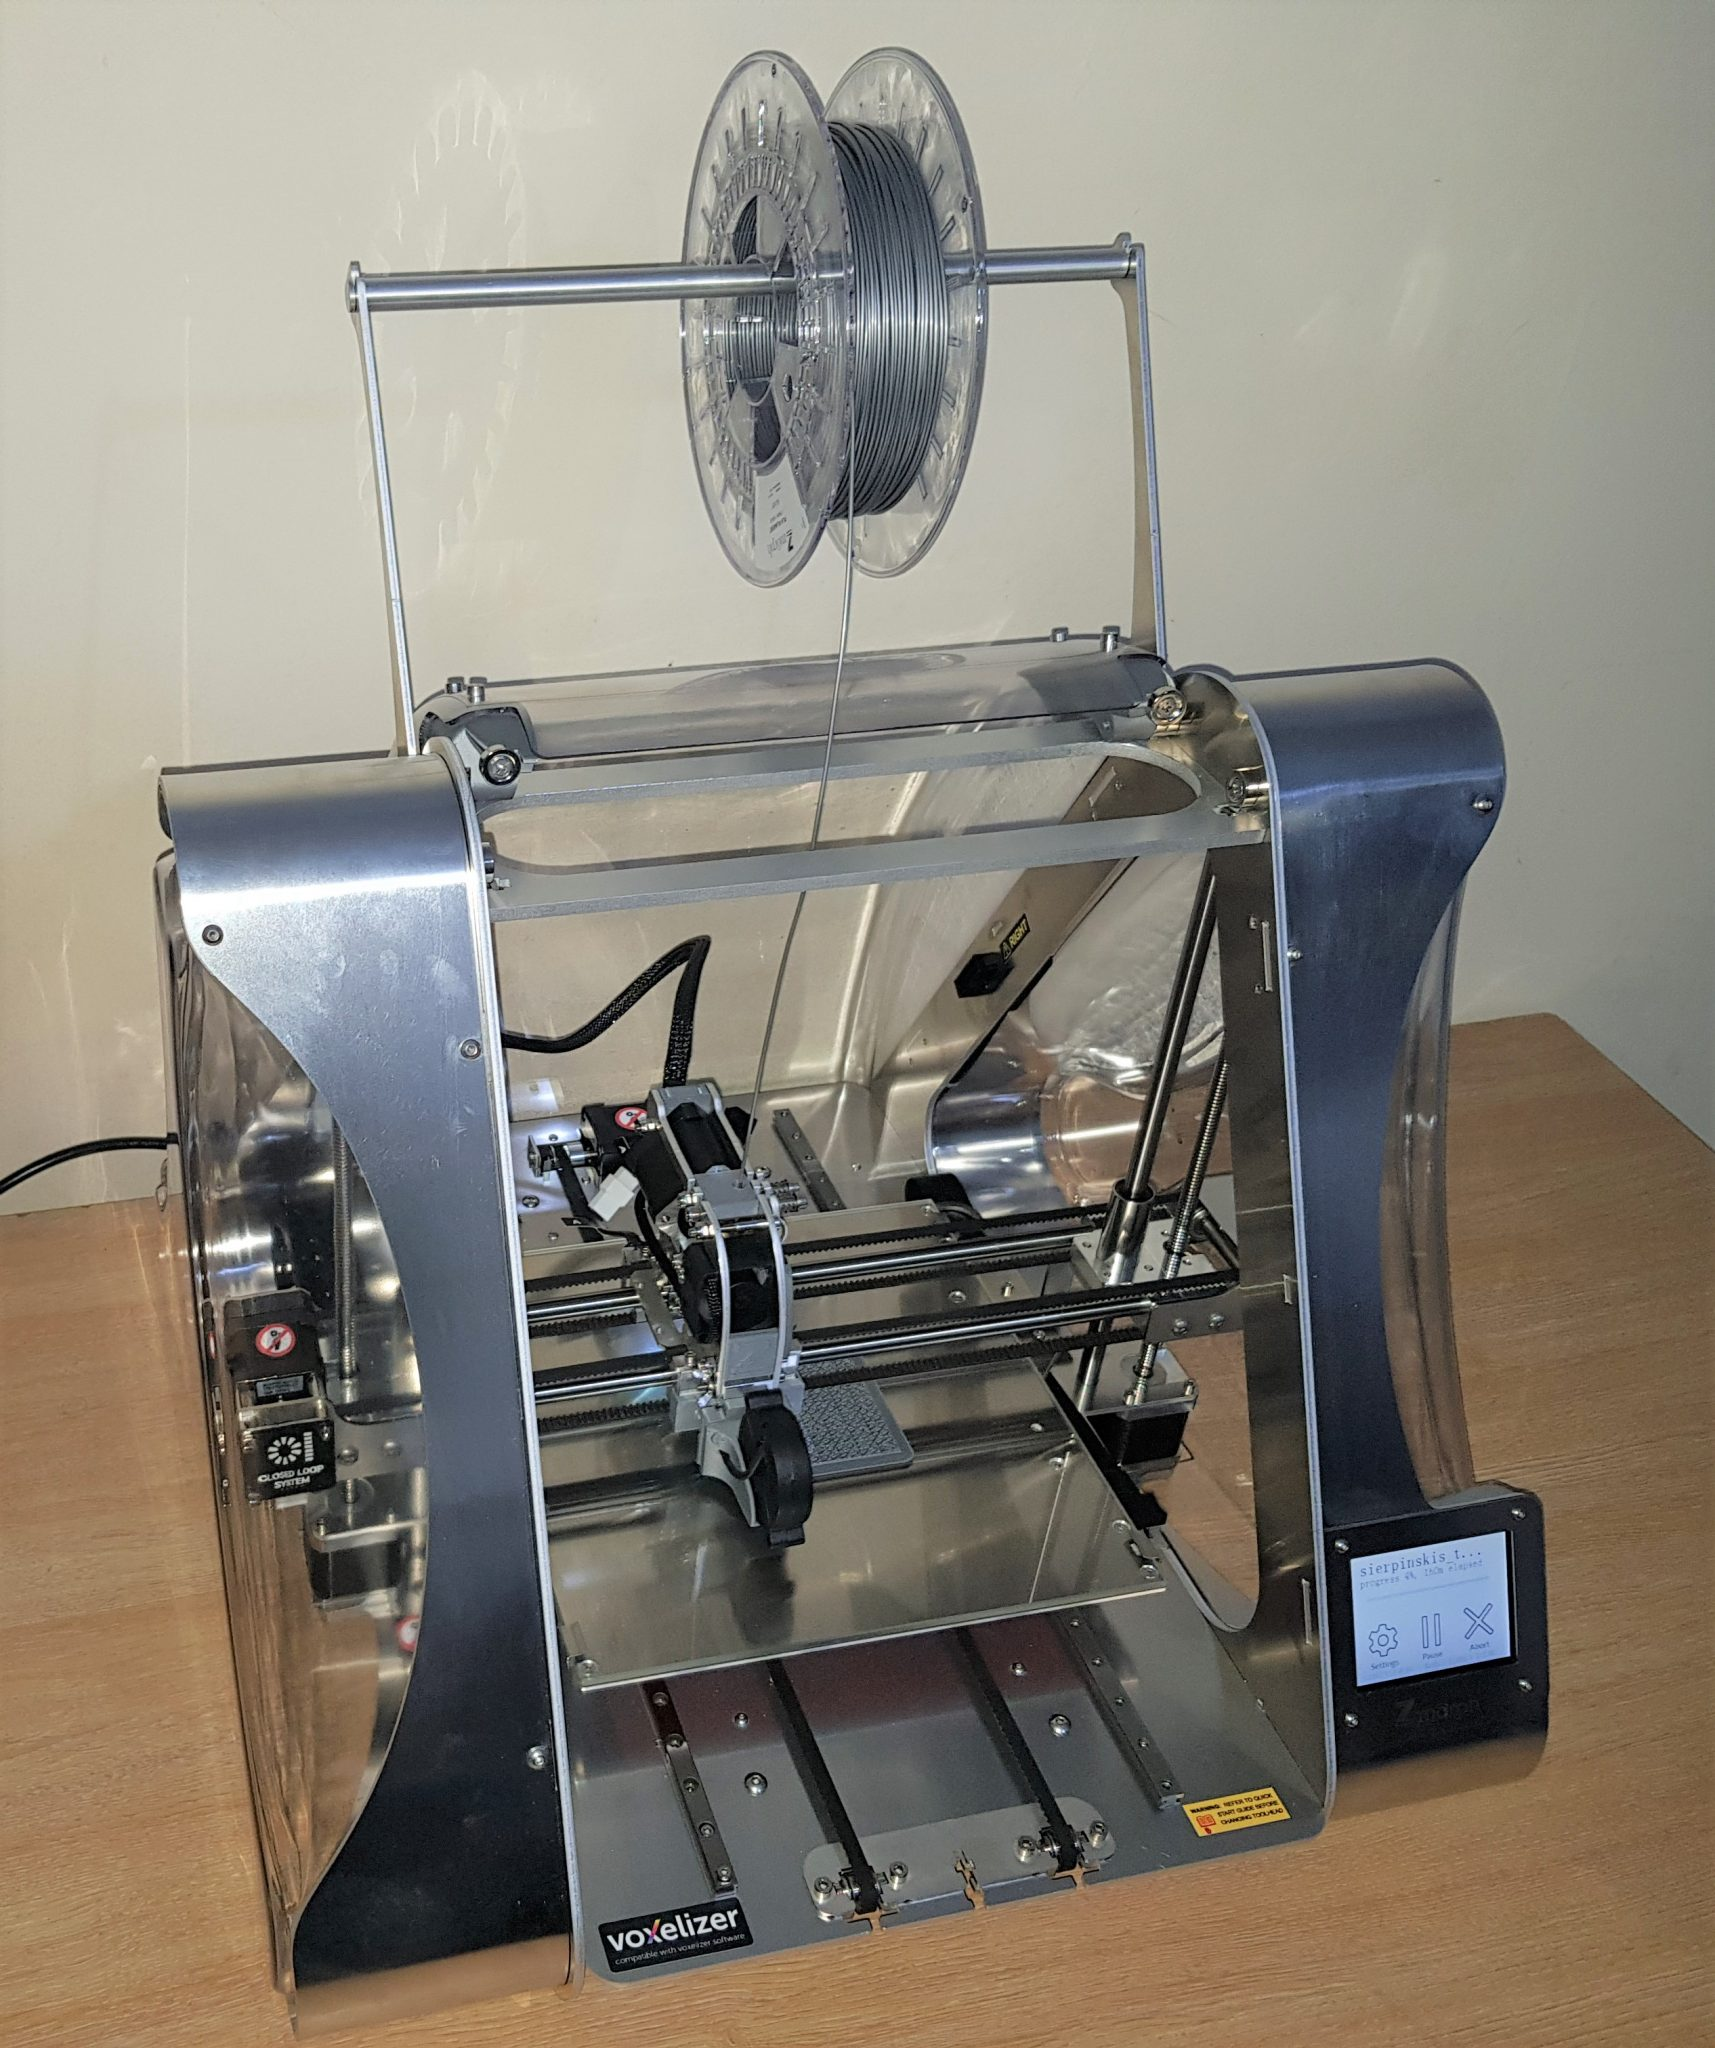 ZMorph VX multitool 3D printer unboxed with spool holder attached.